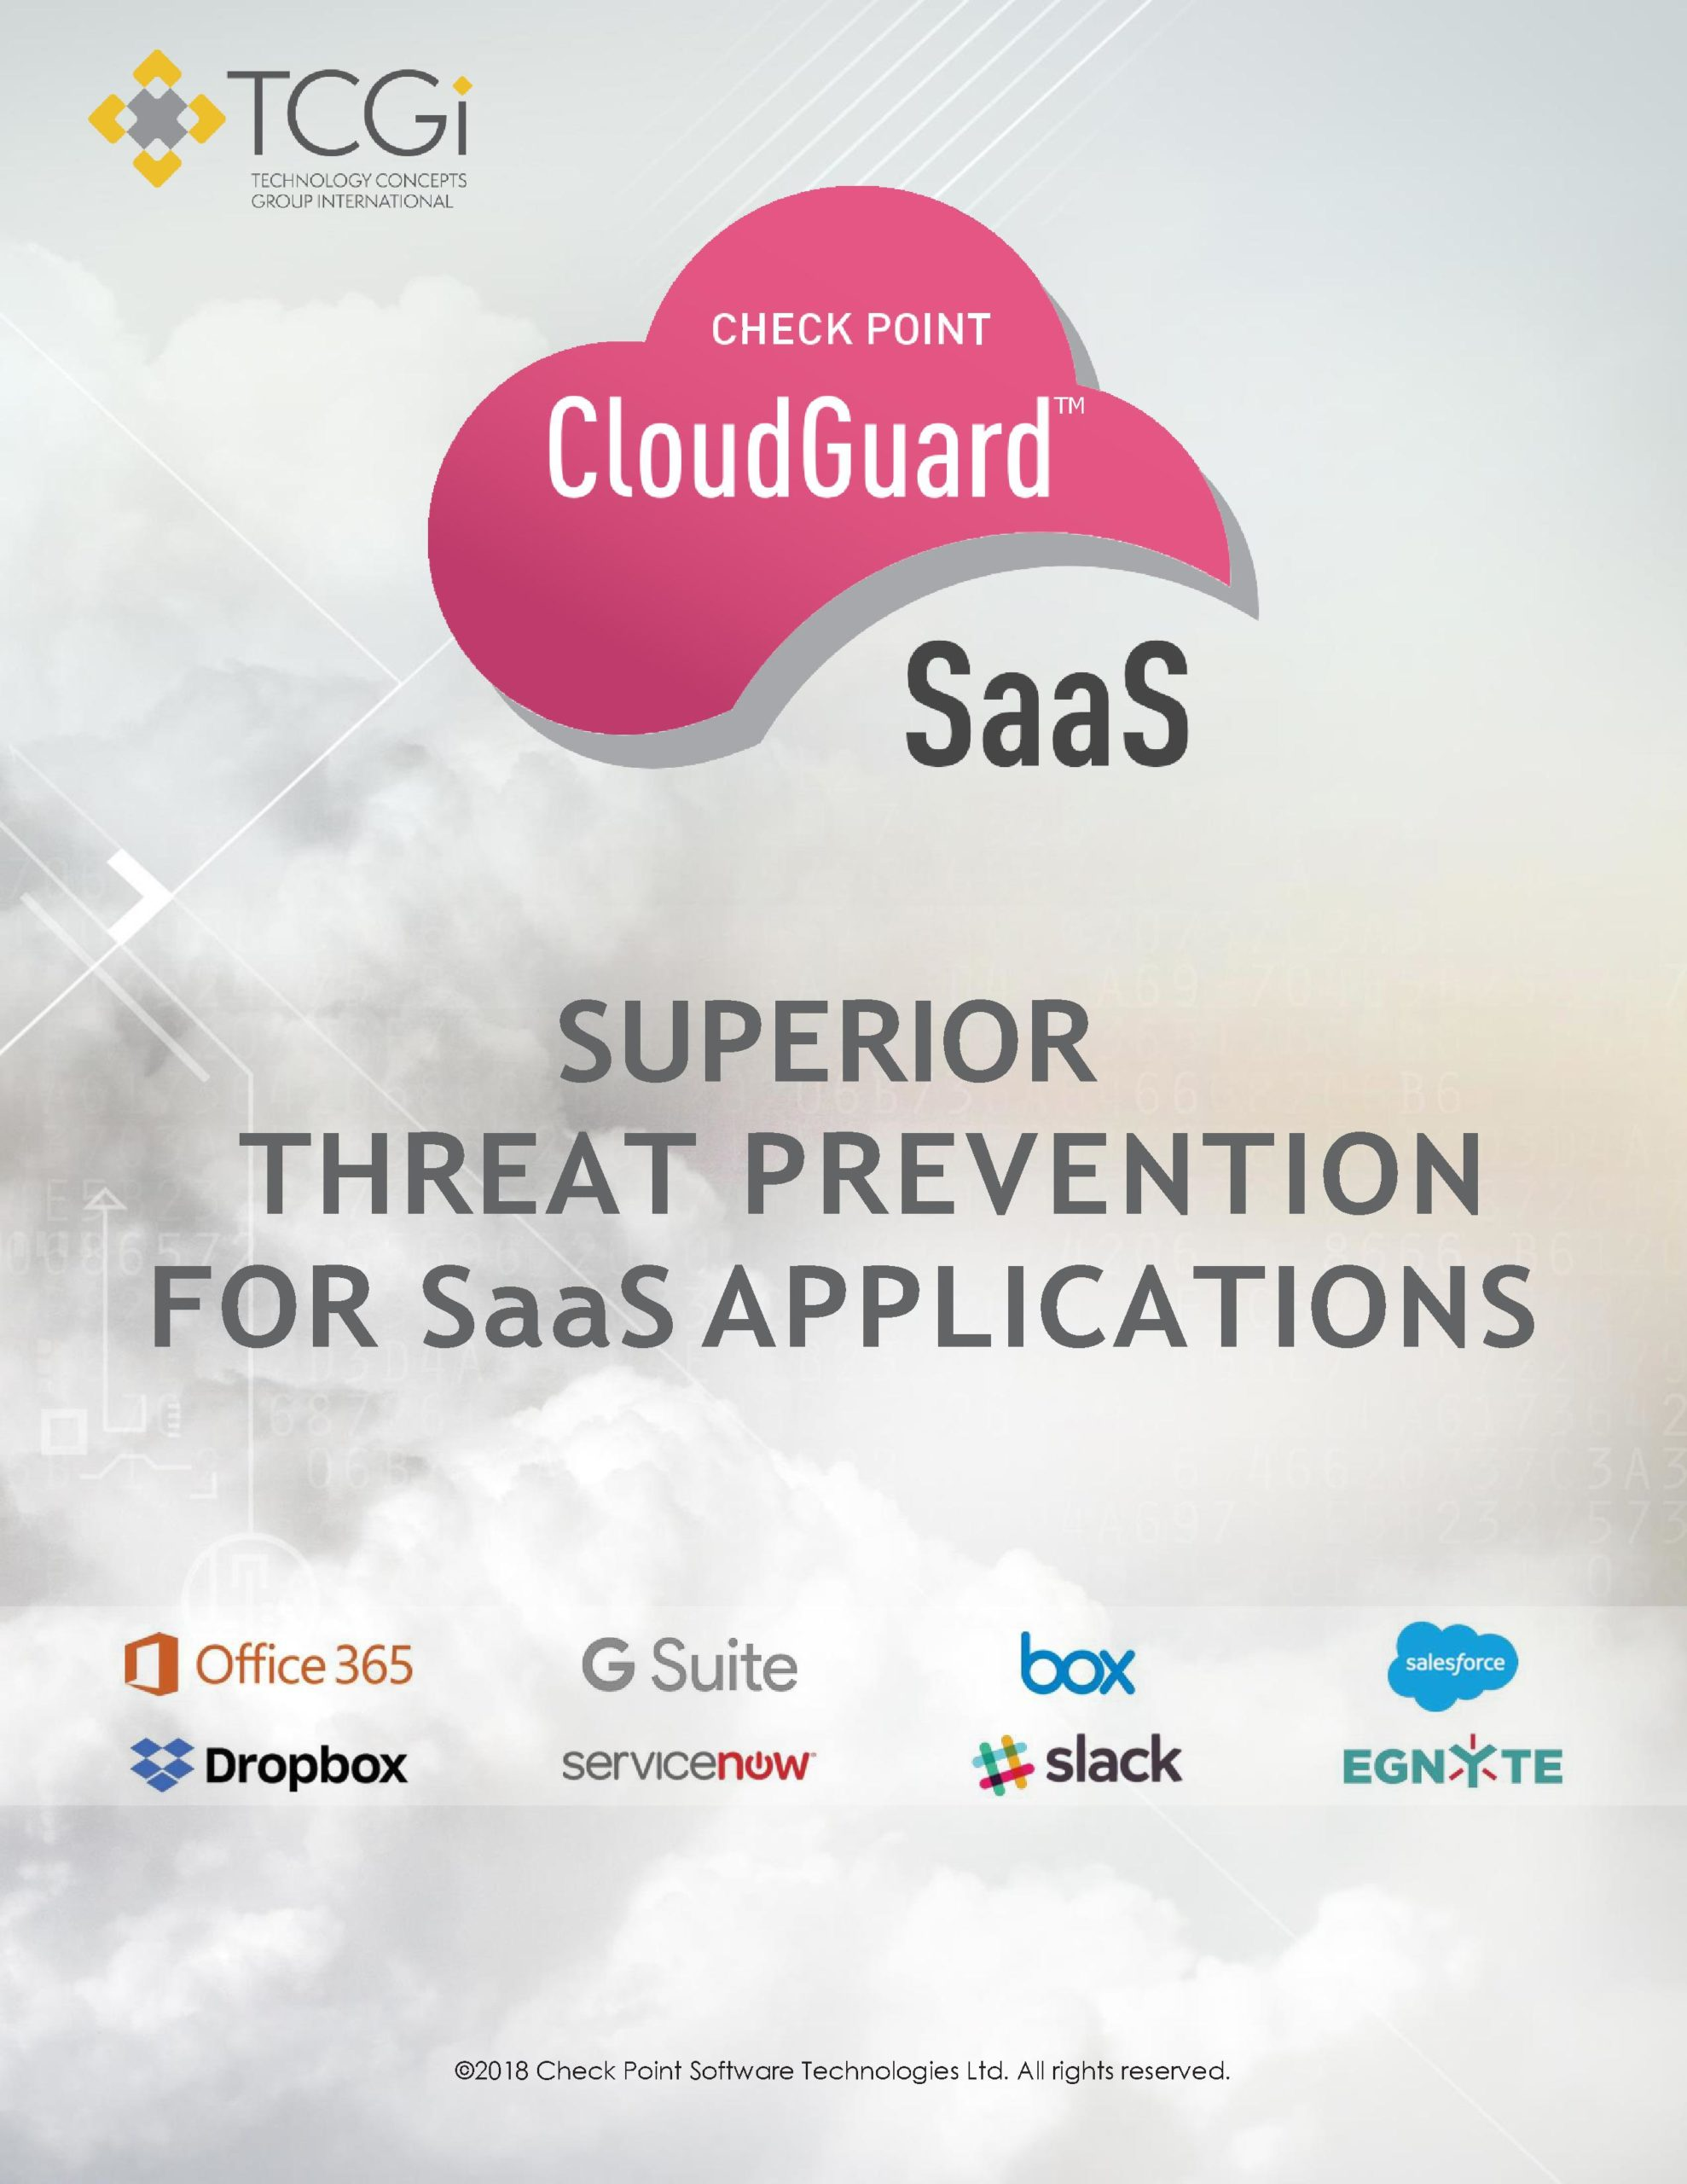 Superior Threat Protection For SaaS Applications